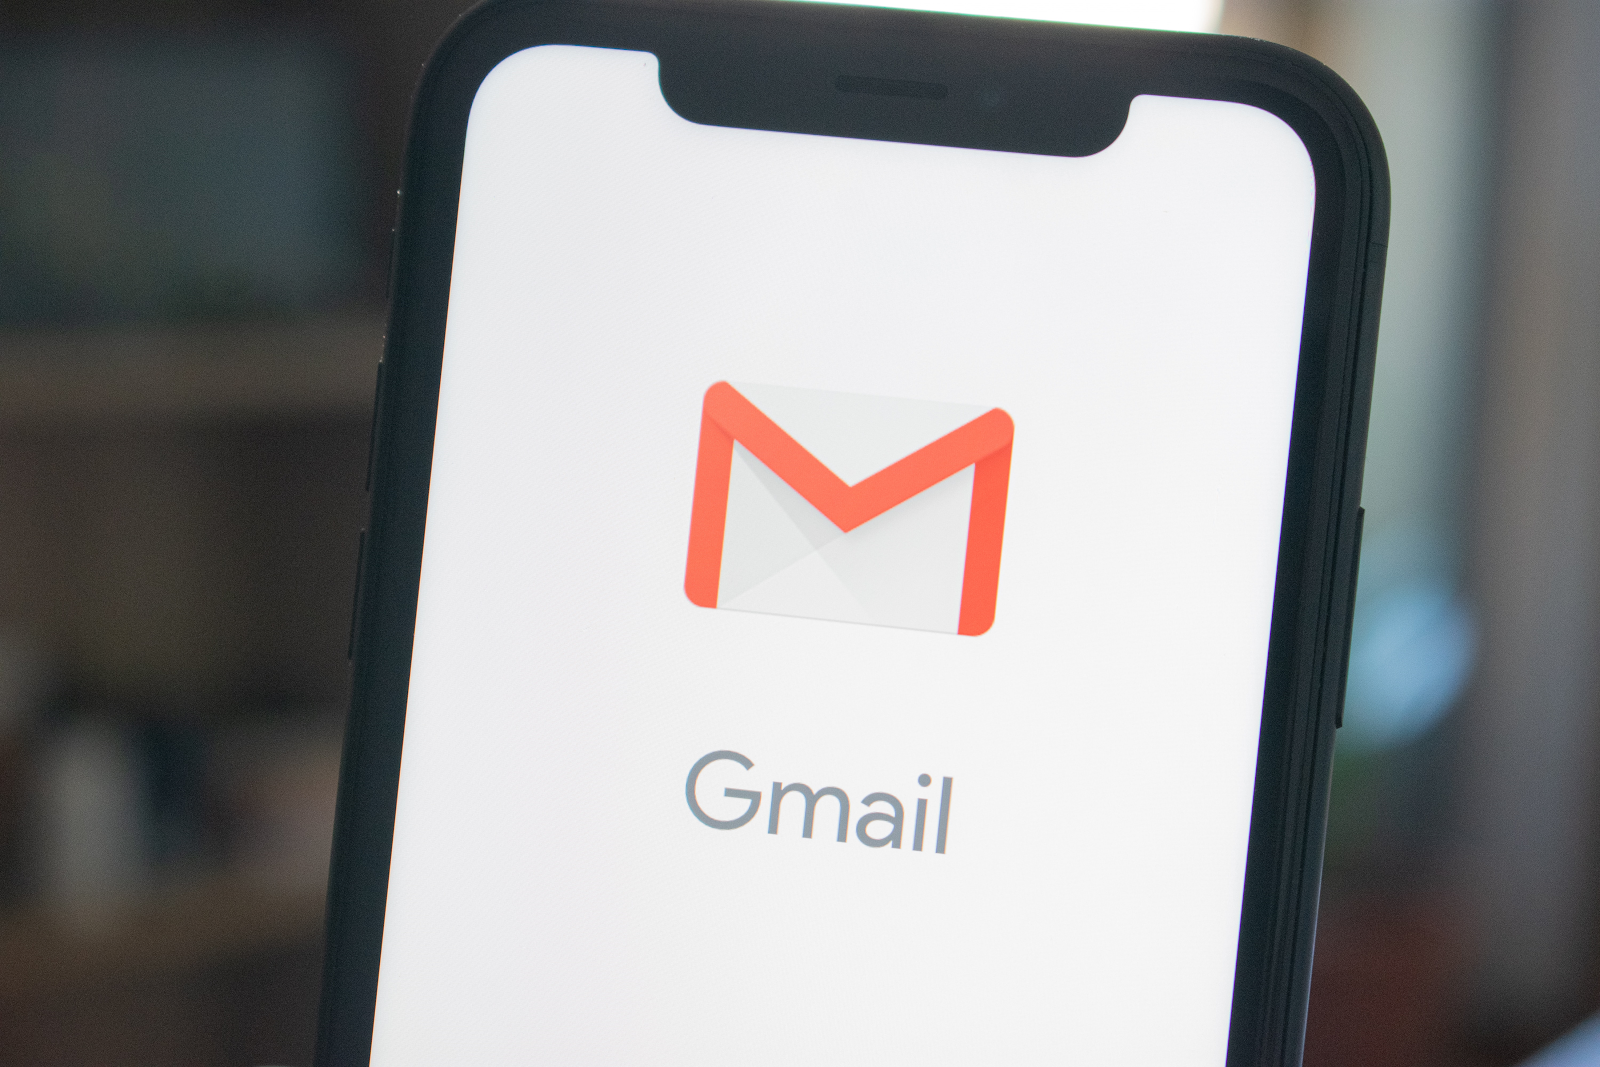 Smart phone with Gmail icon and word